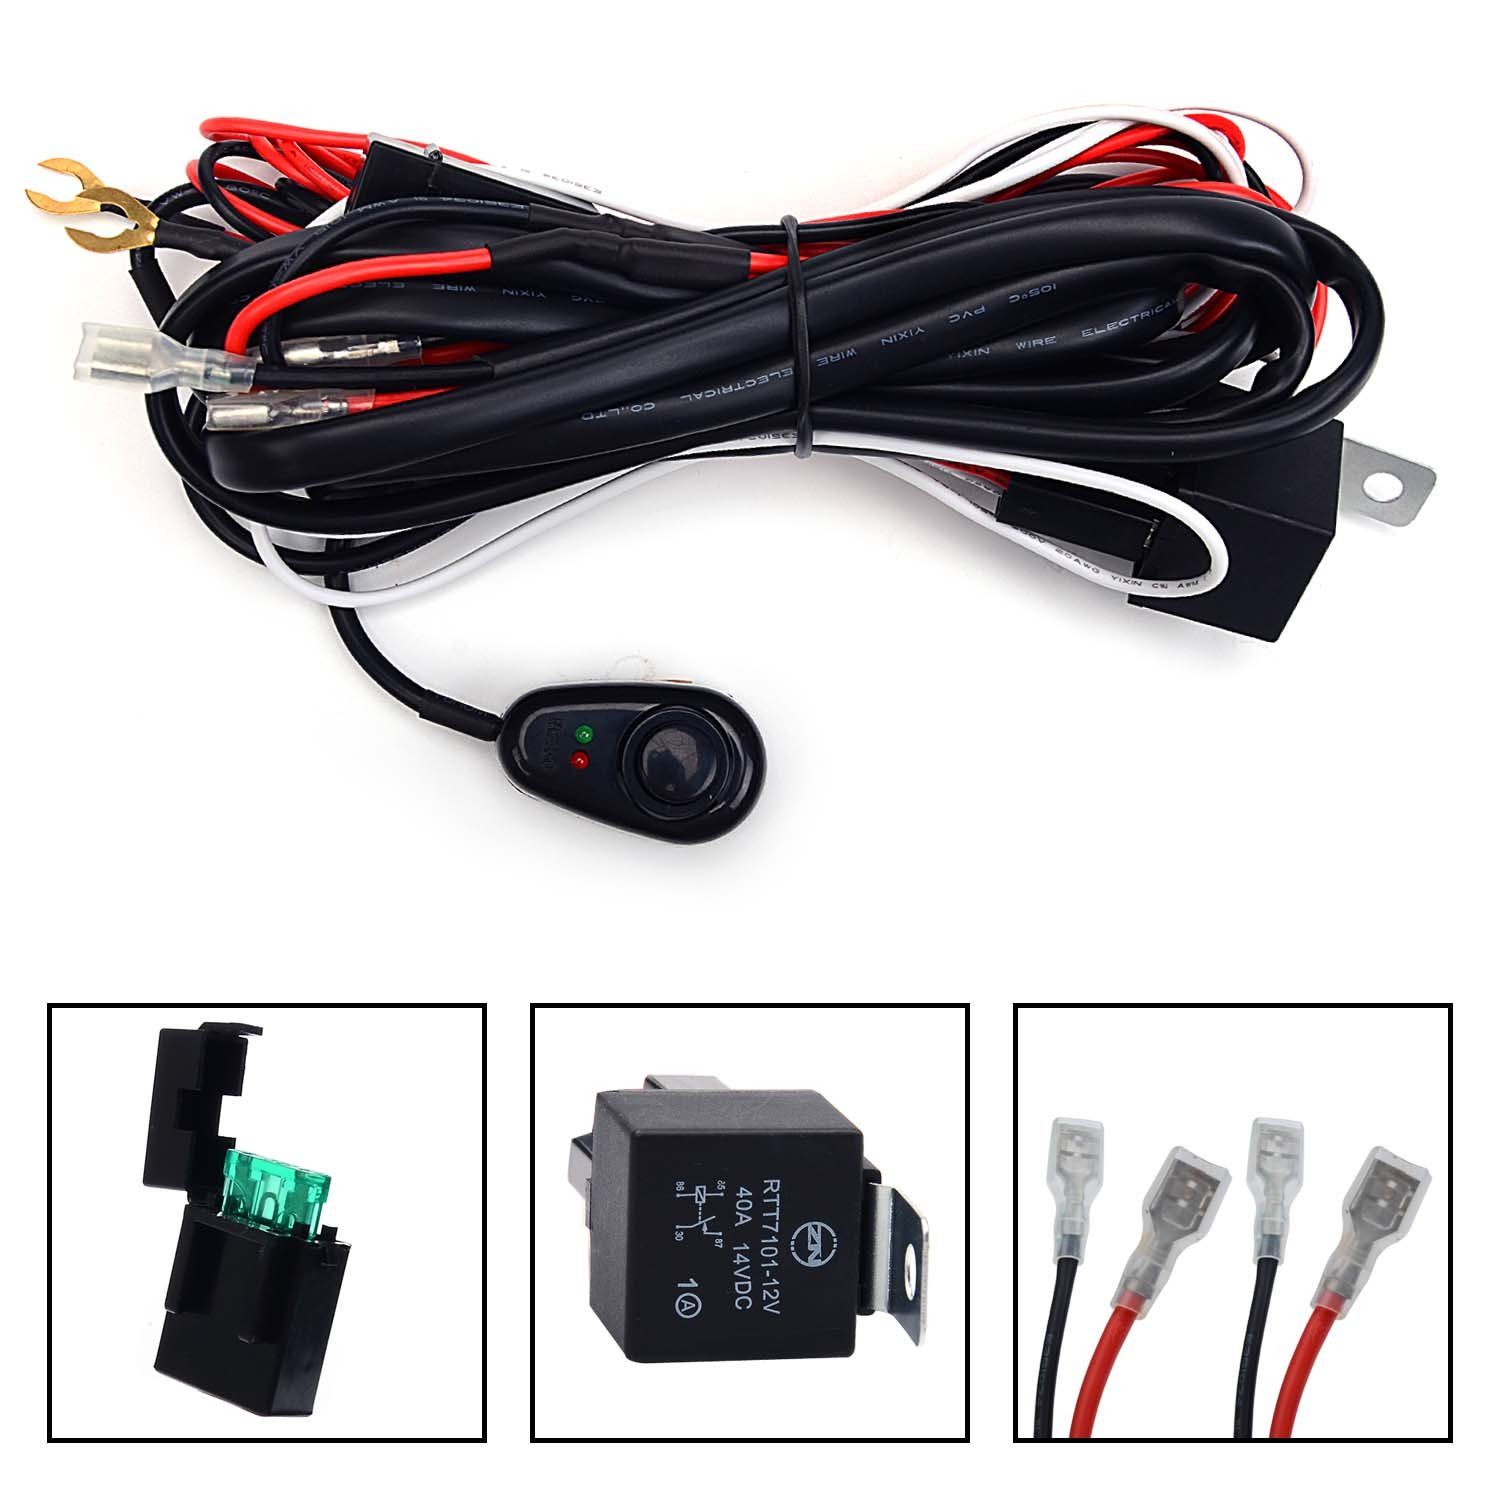 KAWELL Universal 2 lead LED Light Bar Wiring Harness Kit with Fuse Relay  ON/OFF Switch for LED Offroad Driving light LED lamp fog light work light  (12V 40A ...